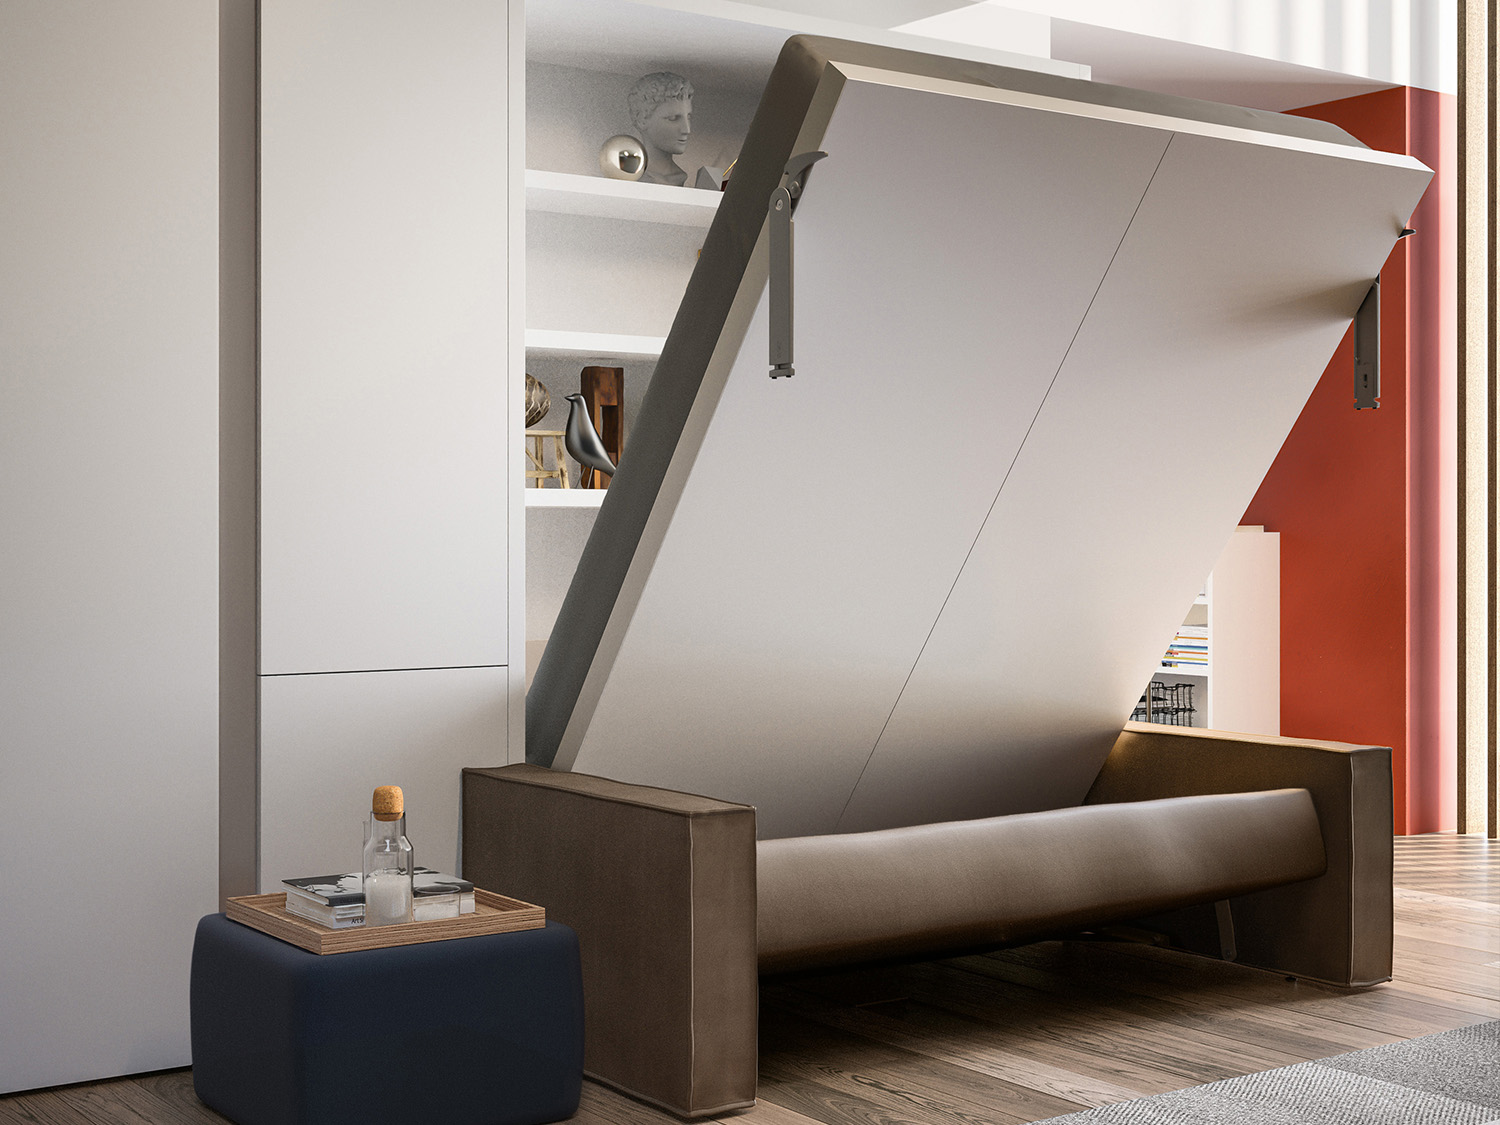 Penelope Wall Bed With Sofa By Clei Anima Domus